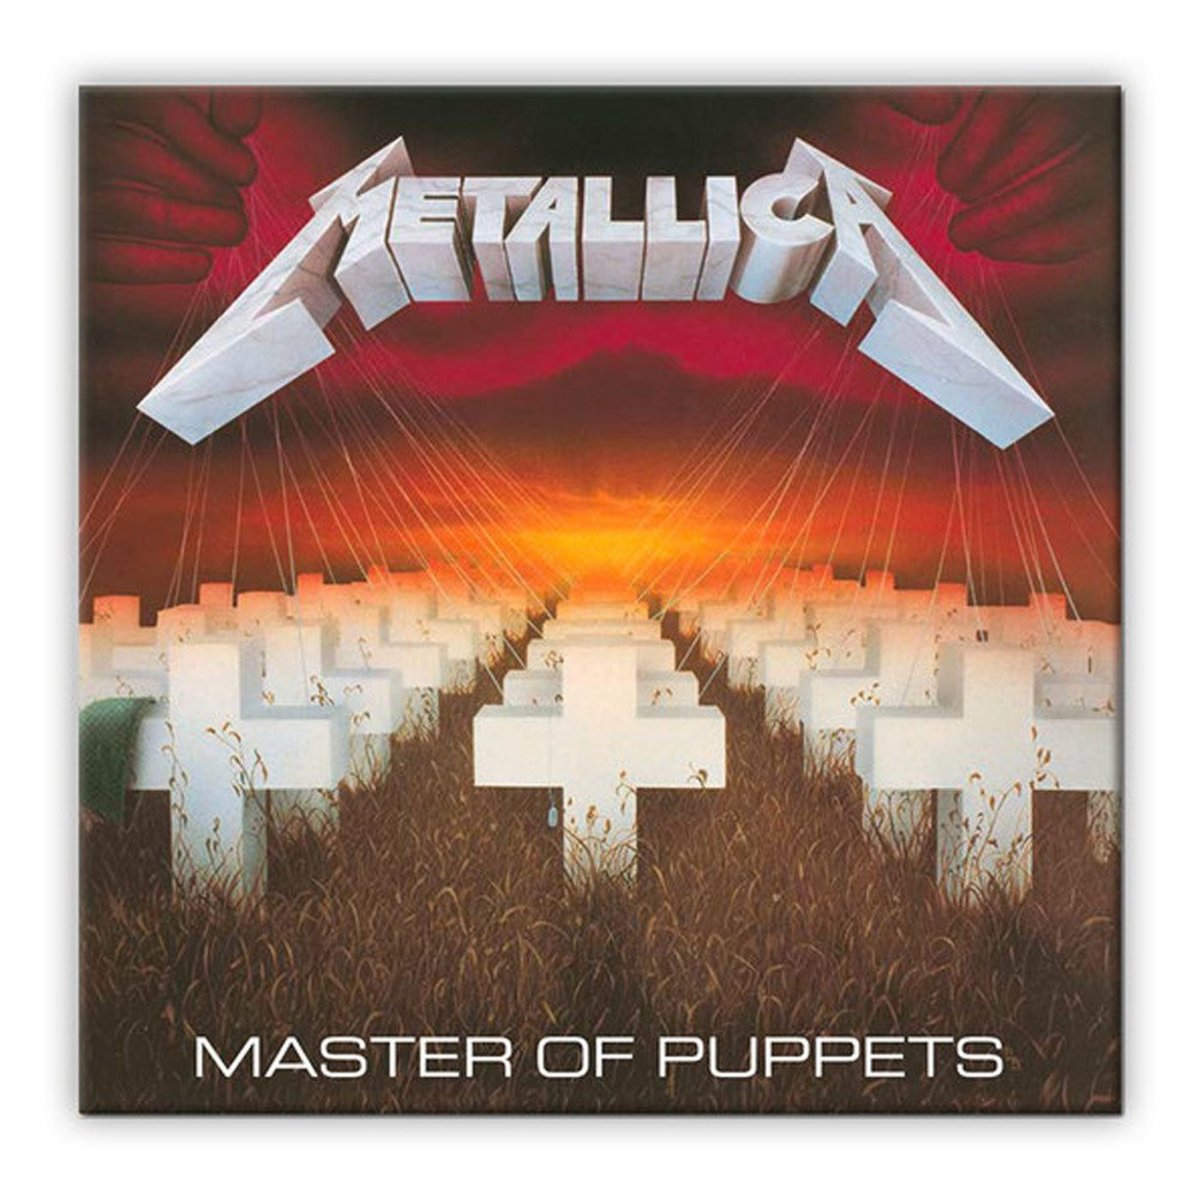 3-great-albums-by-metallica-master-of-puppets-death-magnetic-and-the-beyond-magnetic-ep-which-one-do-you-like-most